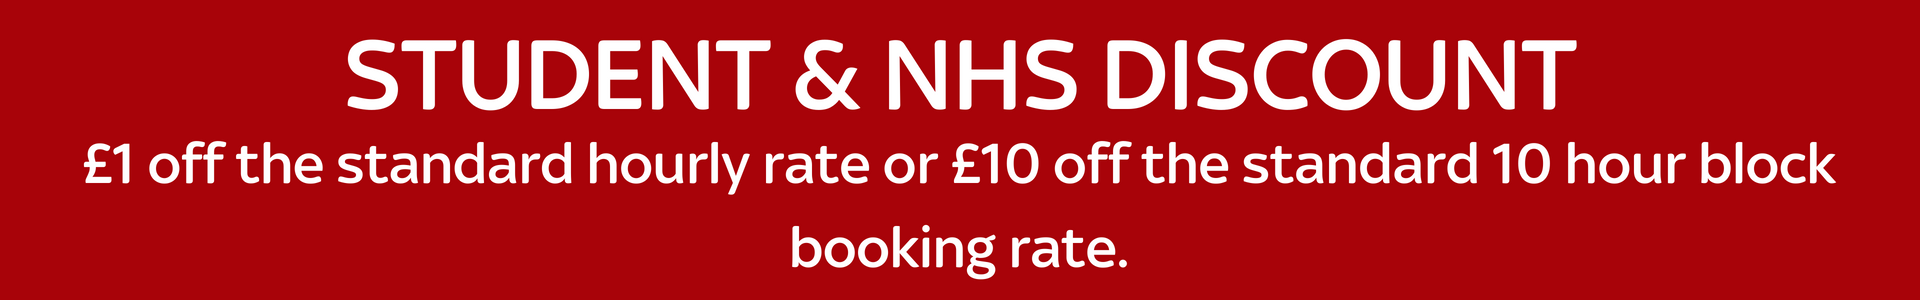 STUDENT & NHS DISCOUNT